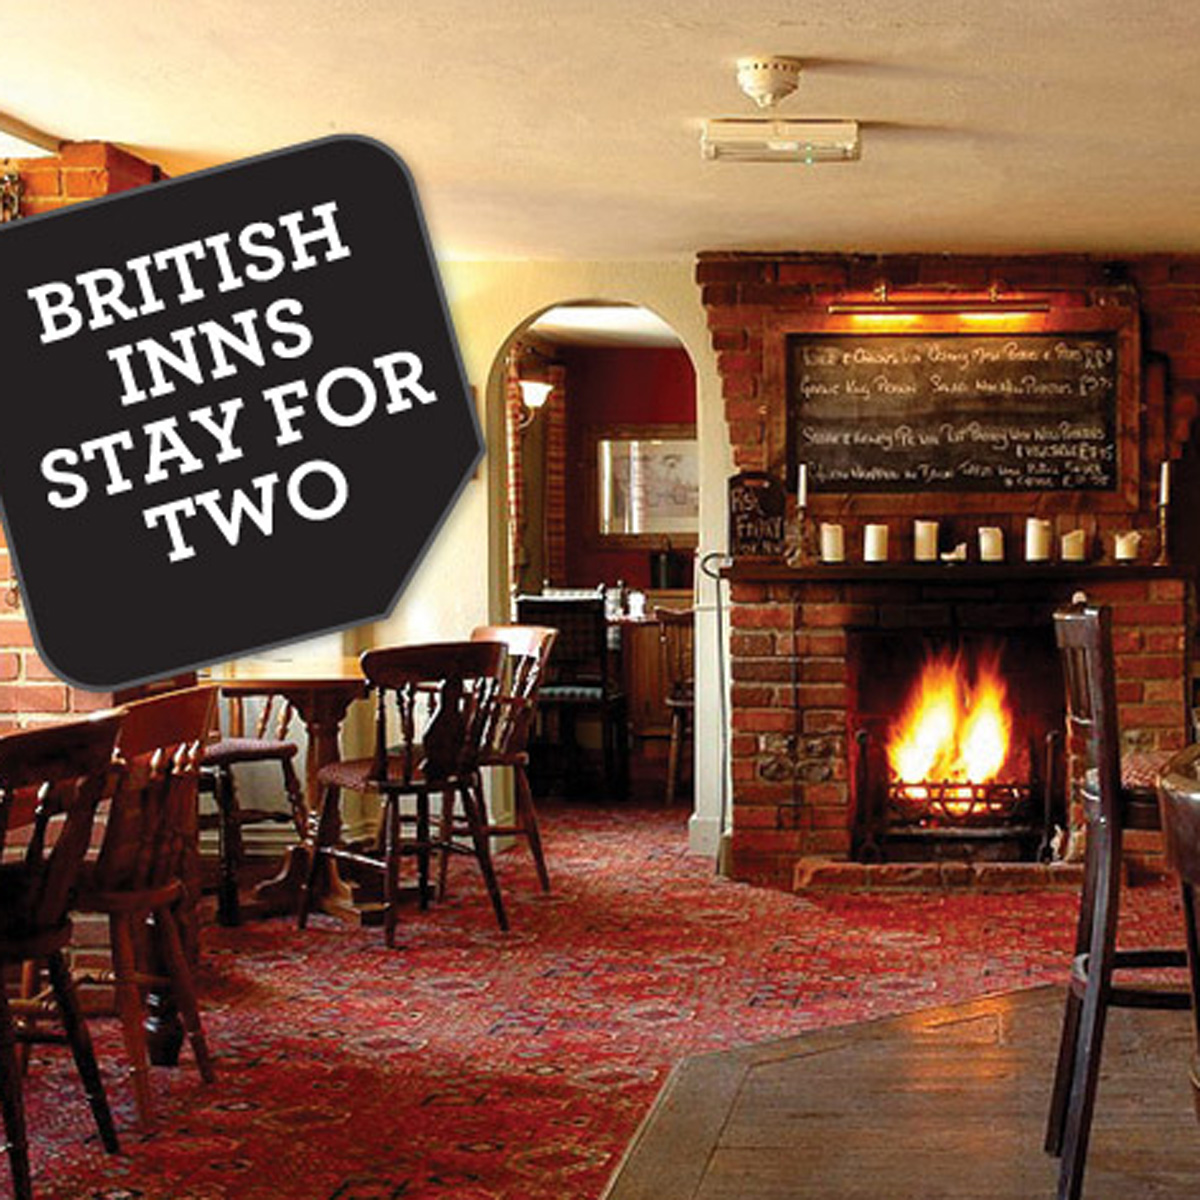 Traditional British Inns Stay for Two